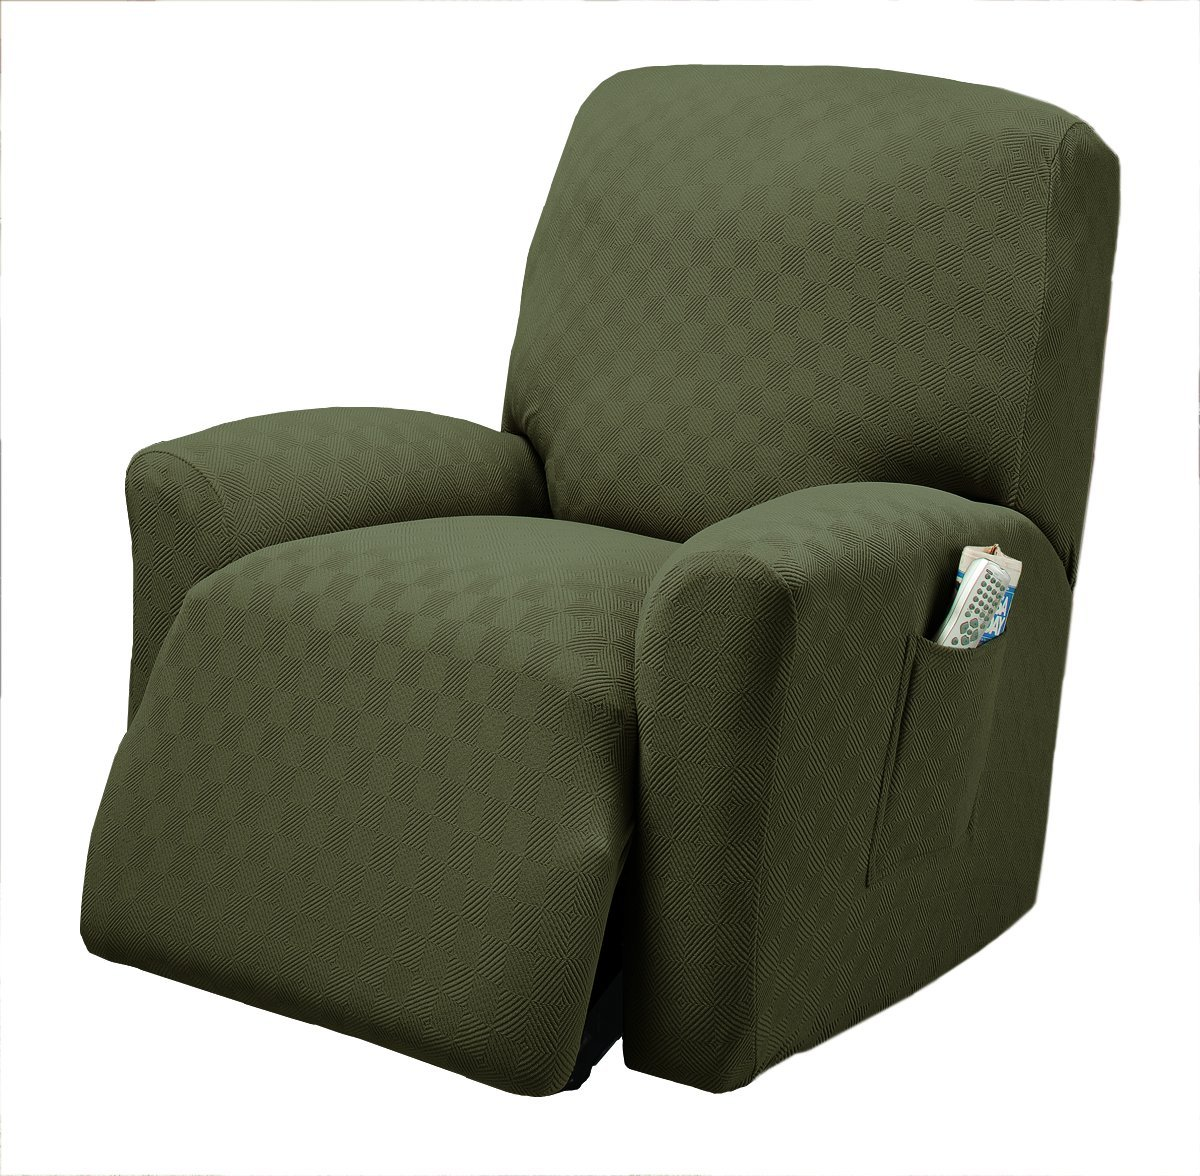 Amazon.com: Stretch Sensations Newport Recliner Stretch Slipcover, Wheat:  Home U0026 Kitchen